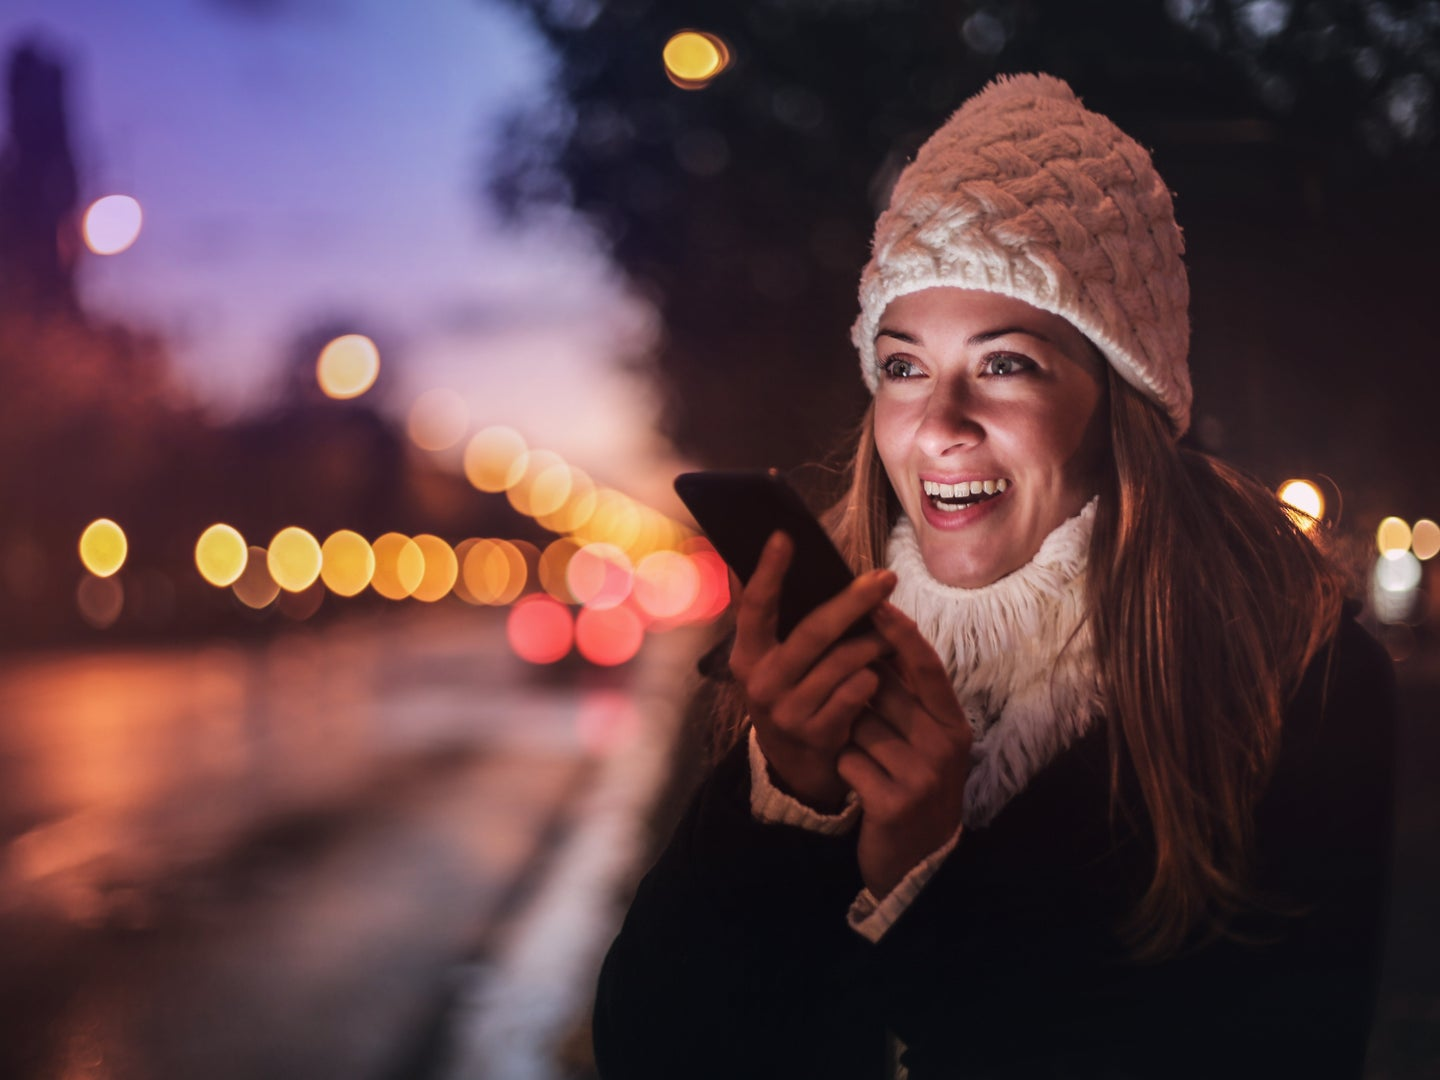 A woman wearing a white knit cap, a white sweater, and a jacket, talking into a phone at night by a street.